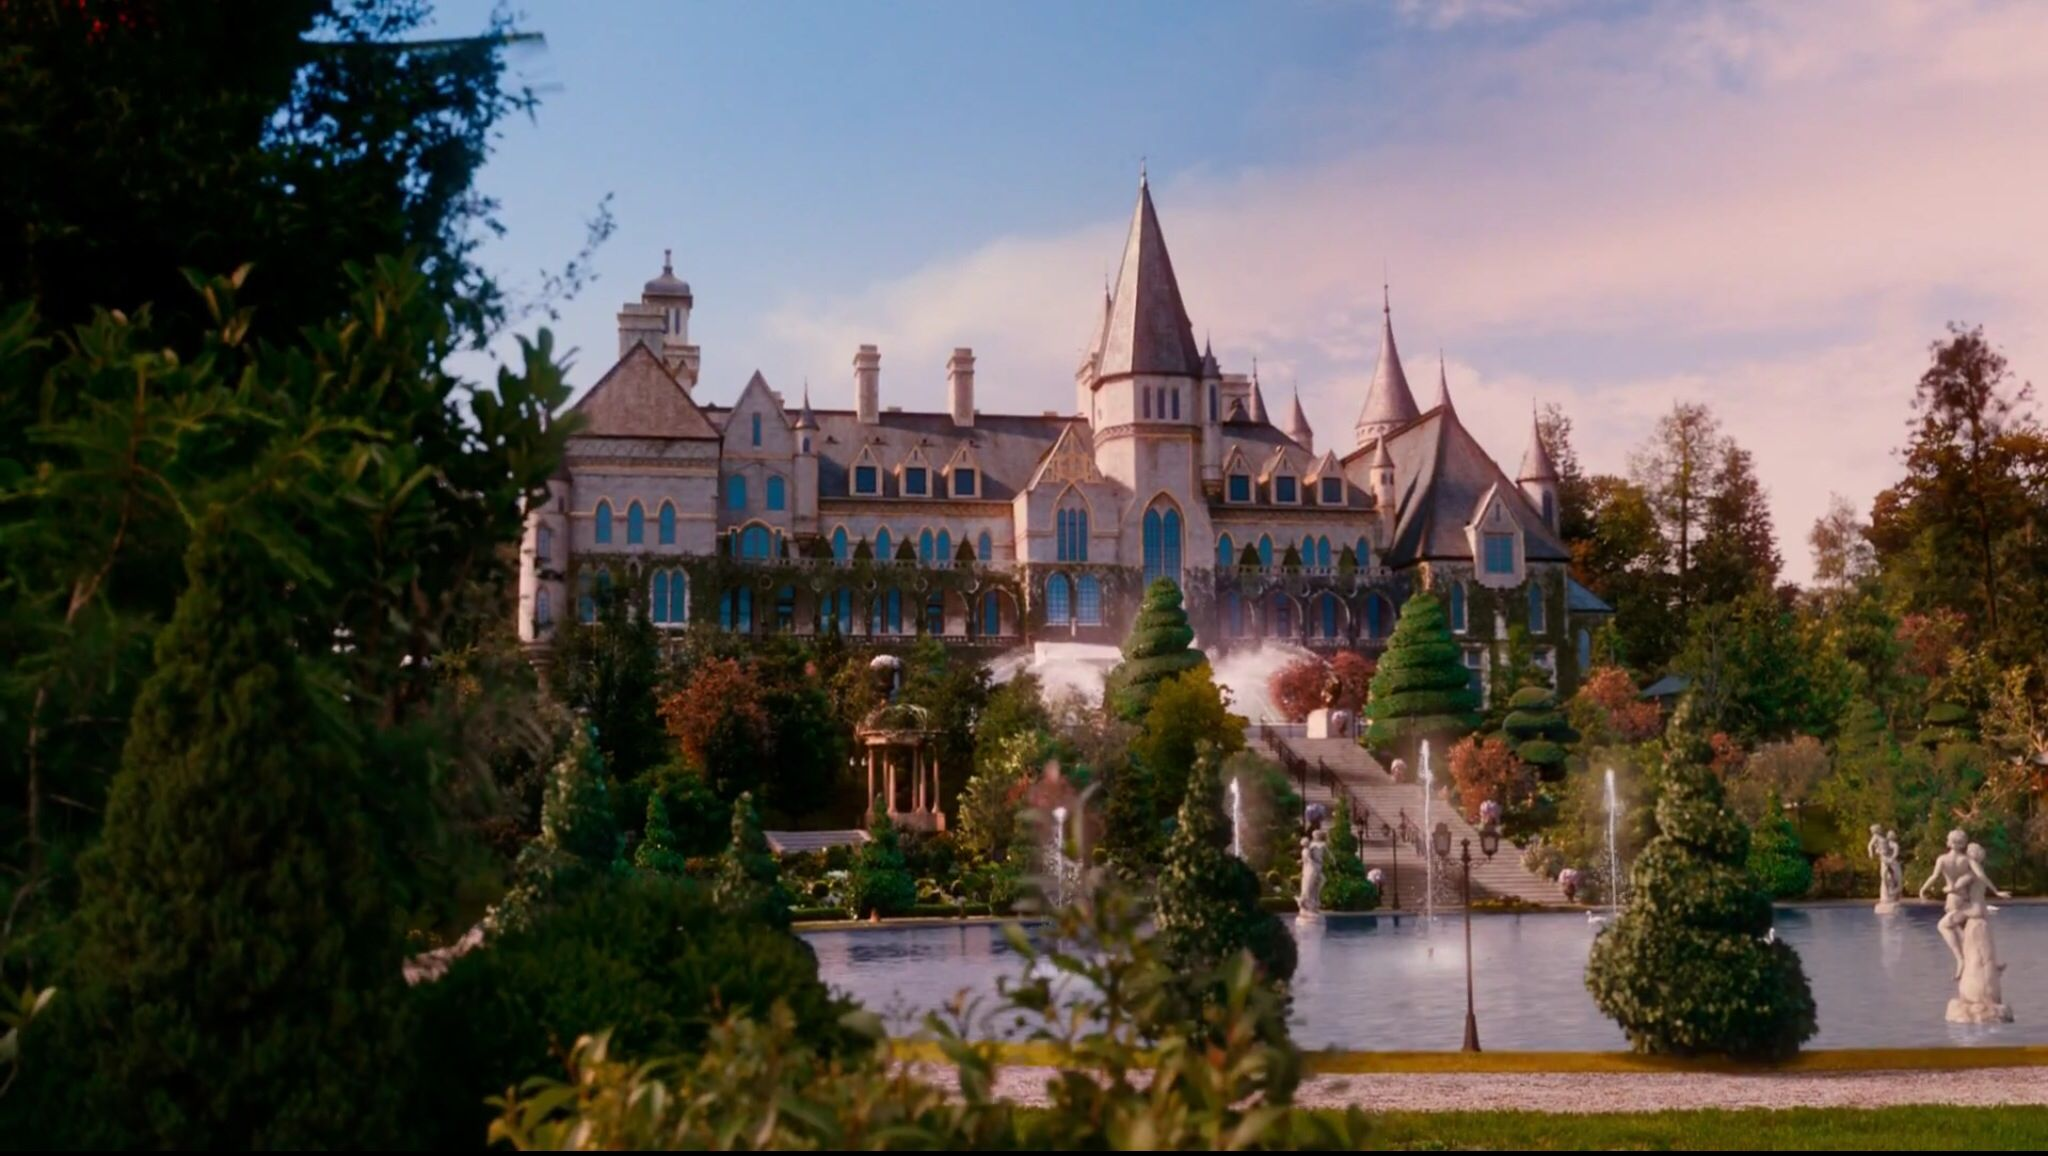 the great gatsby and gatsby s Gatsby's mansion symbolizes two broader themes of the novel first, it represents the grandness and emptiness of the 1920s boom: gatsby justifies living in it all alone by filling the house weekly with celebrated people.